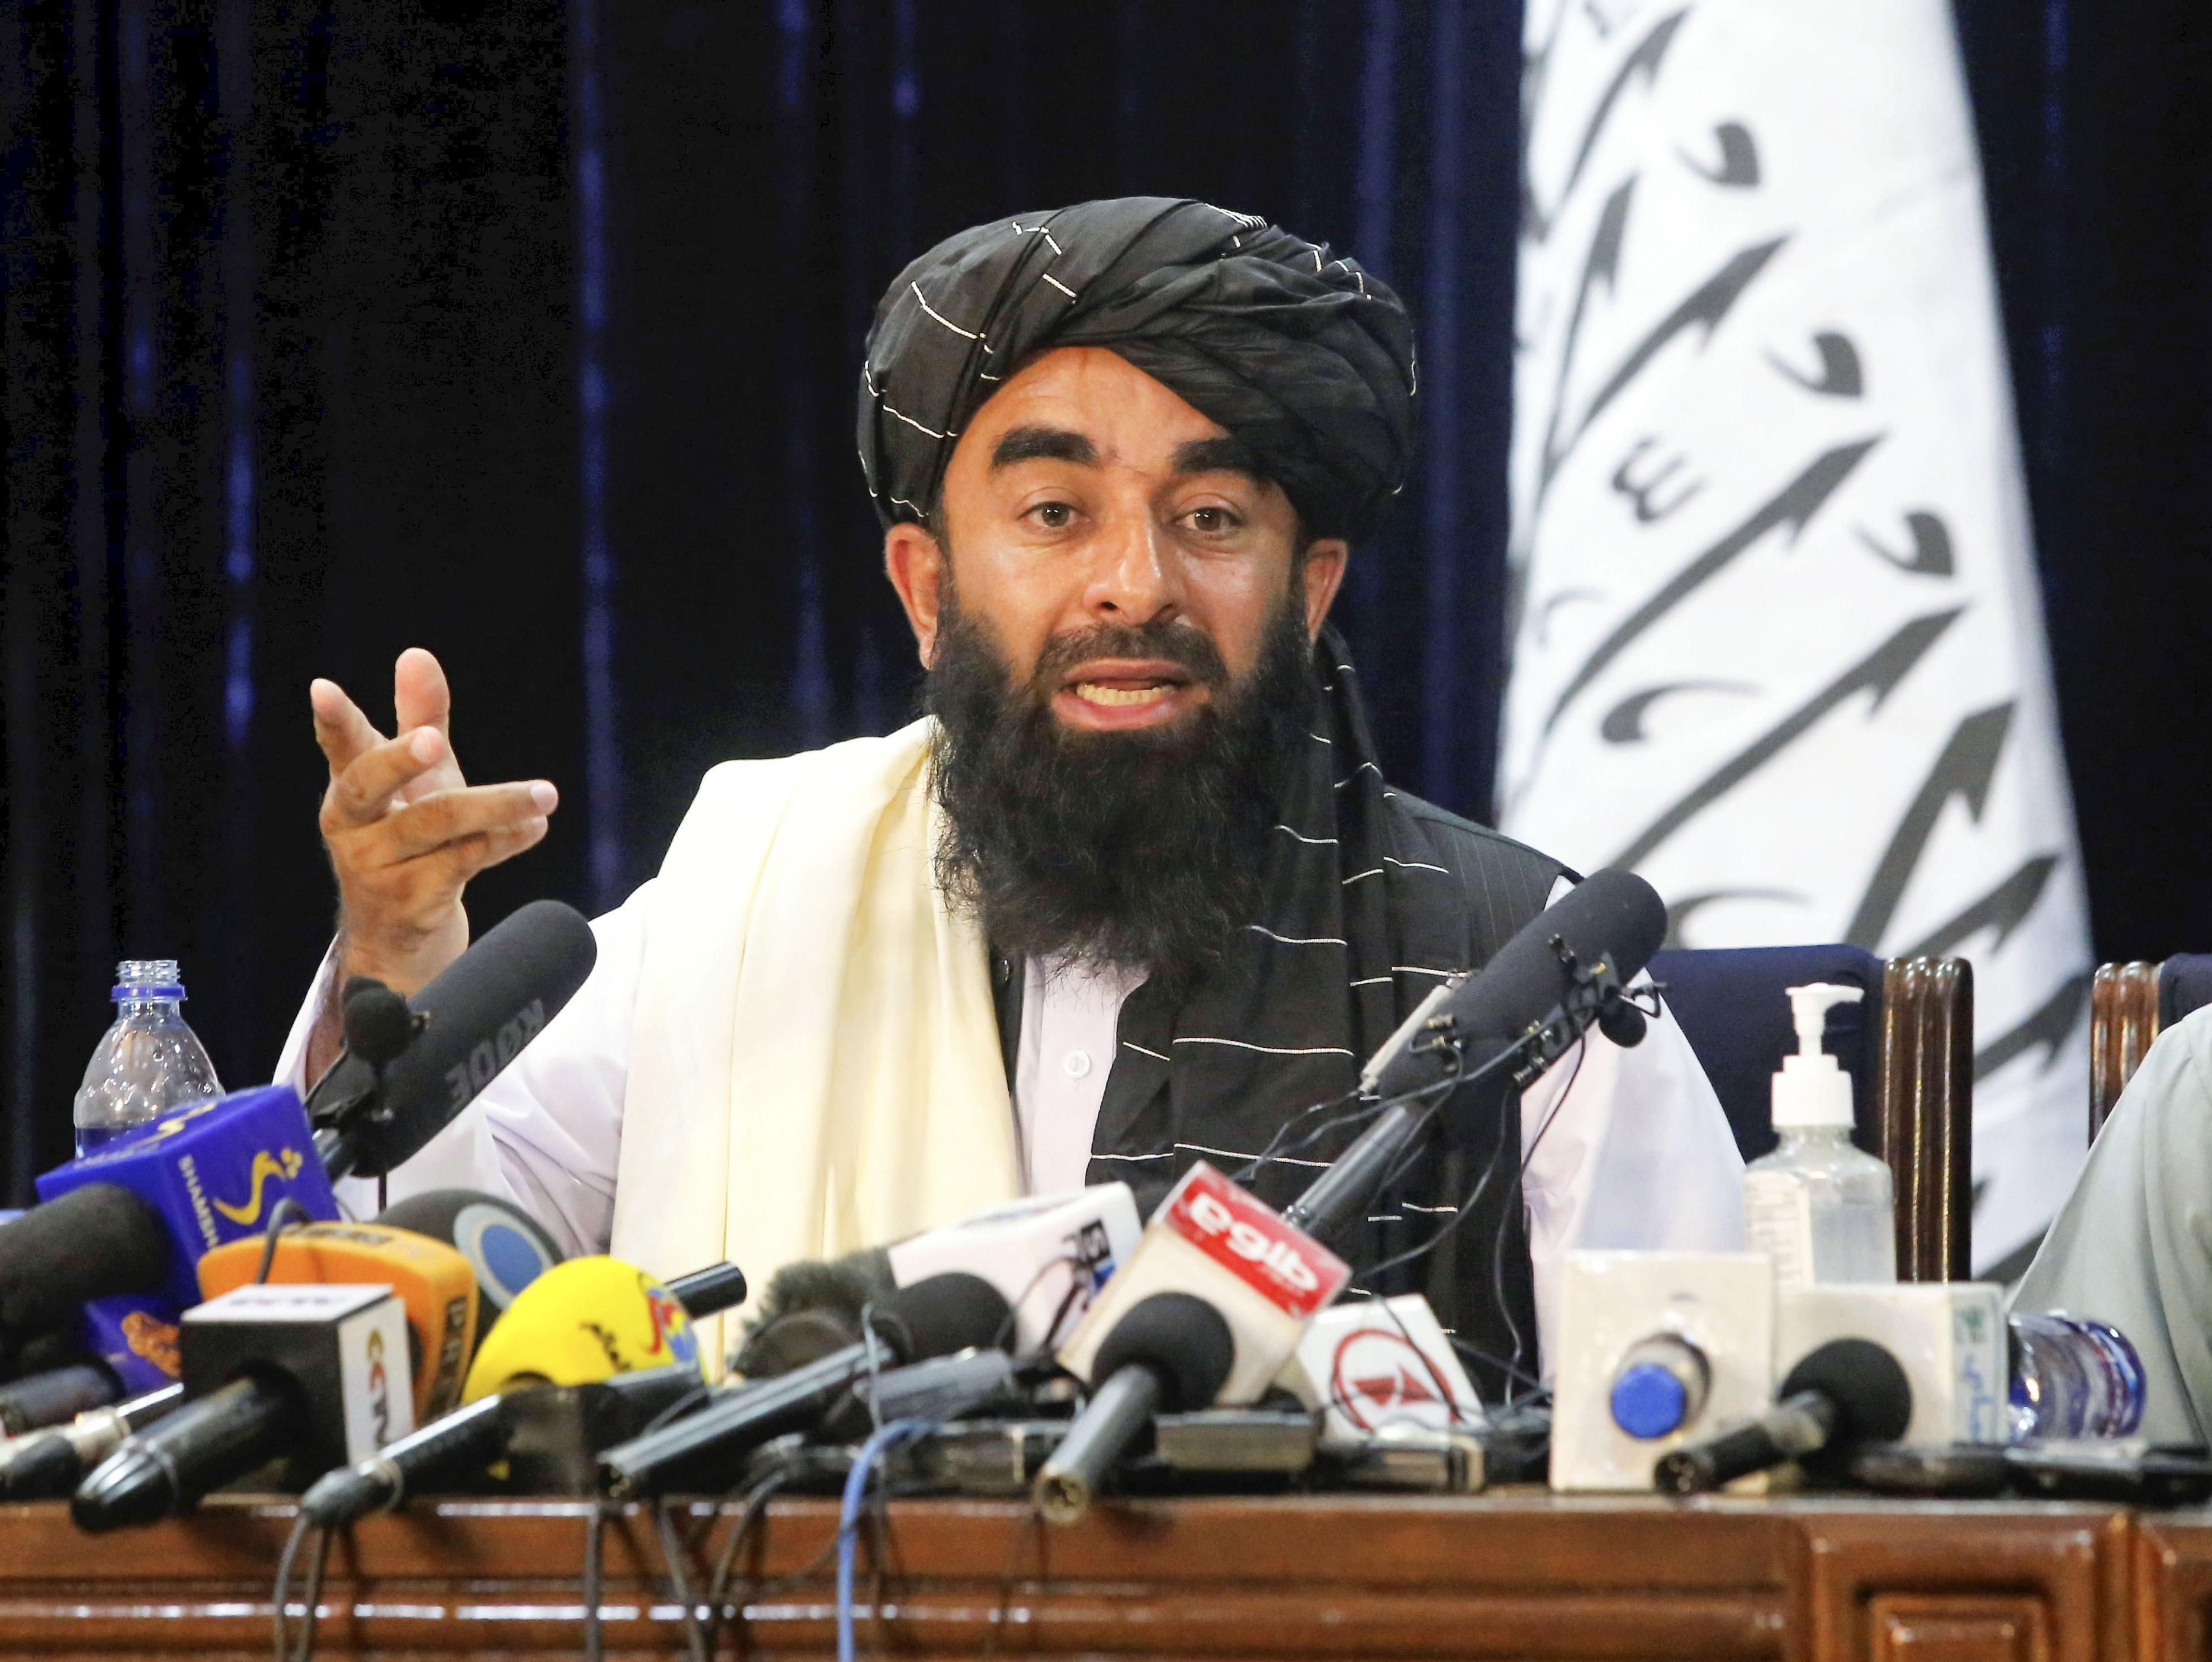 Taliban spokesman Zabihullah Mujahid attends on Aug. 17, 2021, in Kabul the first press conference held by the Islamic militant group since it seized power in Afghanistan. (Photo by Kyodo News via Getty Images)